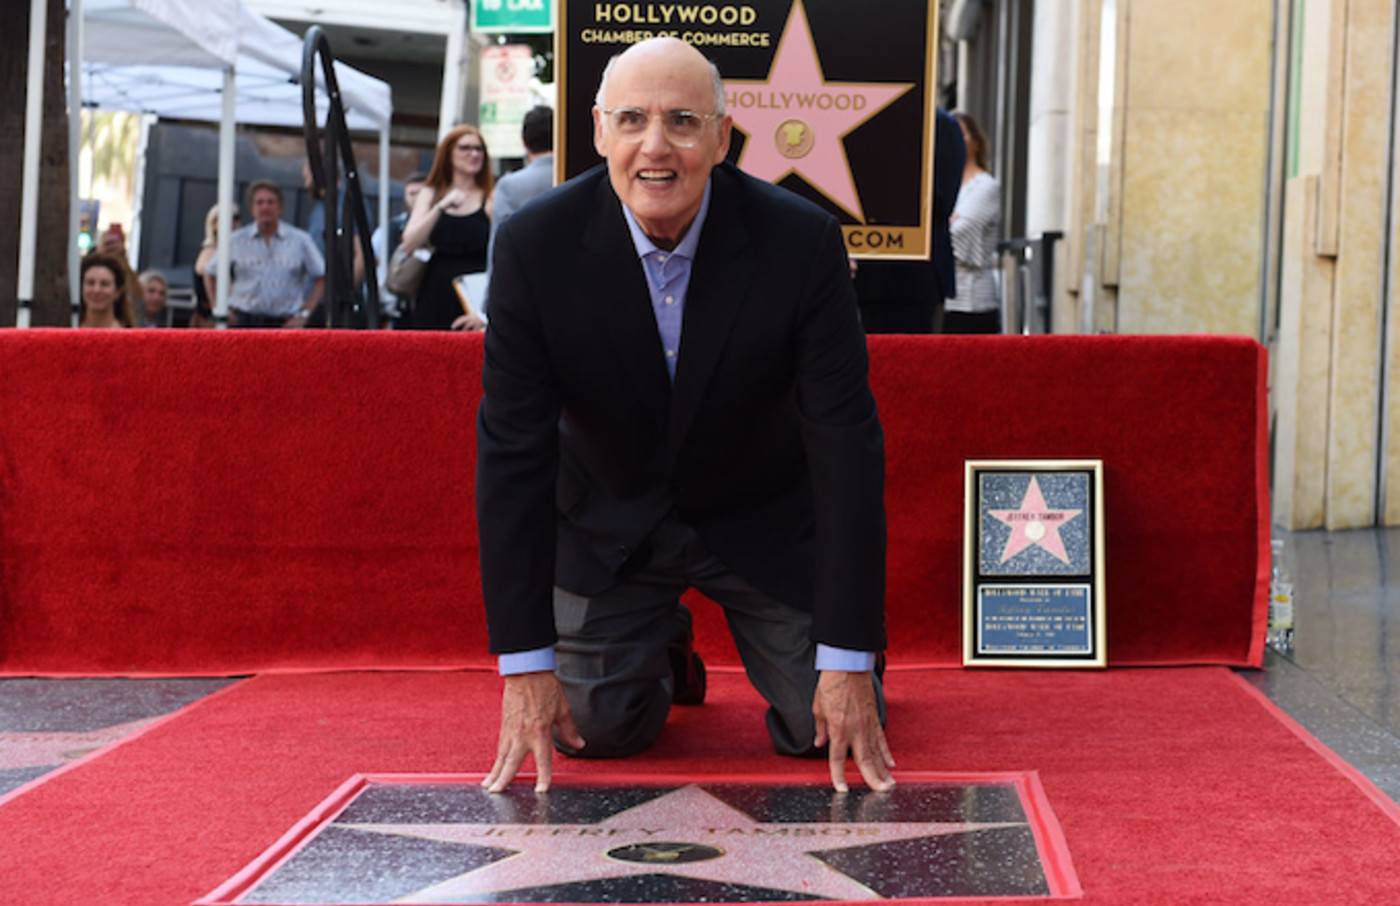 Jeffrey Tambor with his star on the Hollywood Walk of Fame.